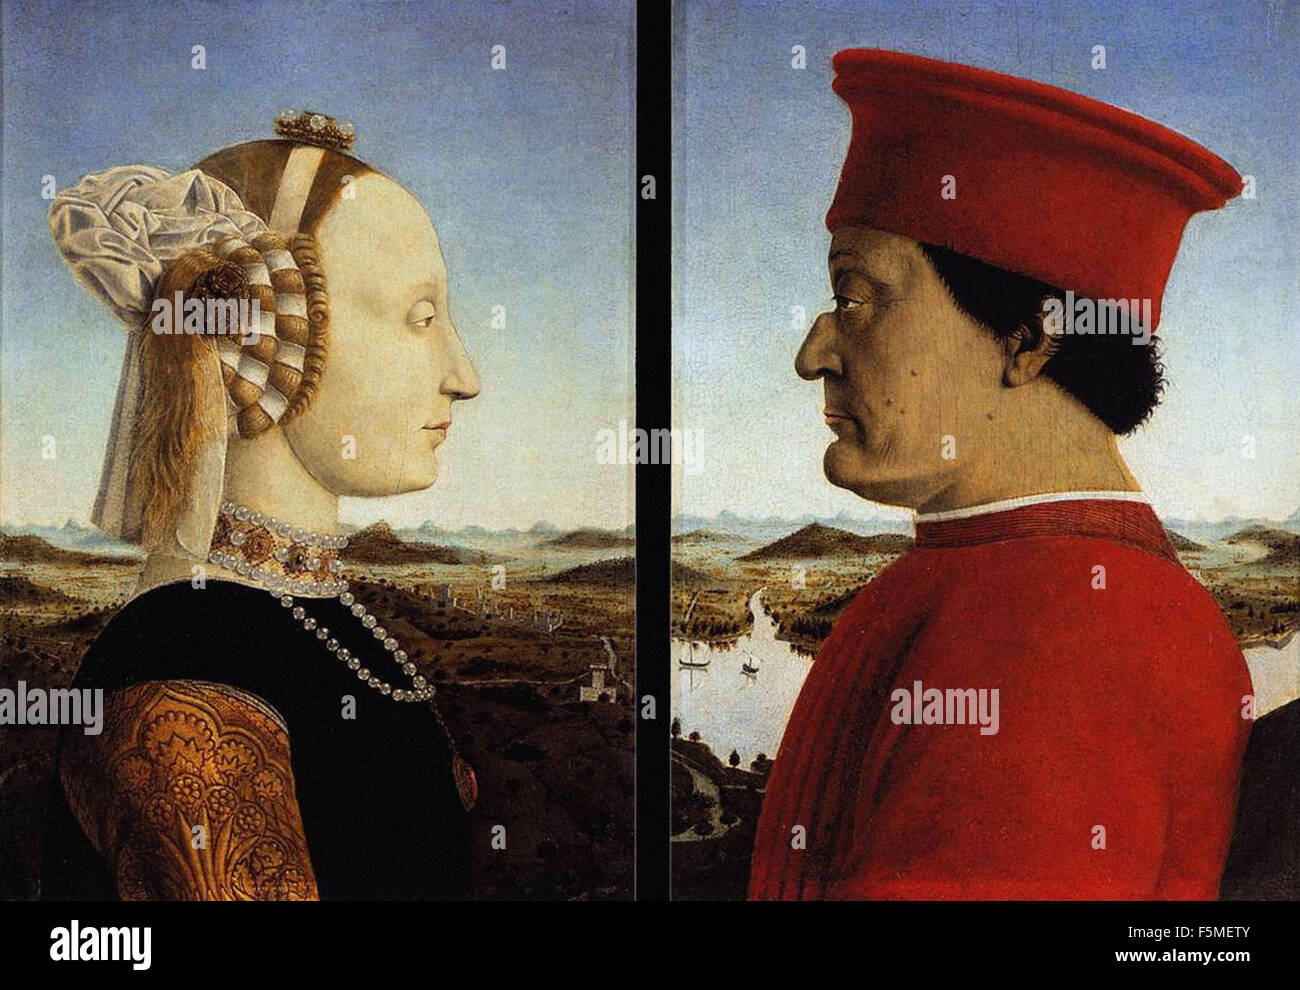 Piero della Francesca - Portraits of Federico da Montefeltro and His Wife Battista Sforza - Stock Image